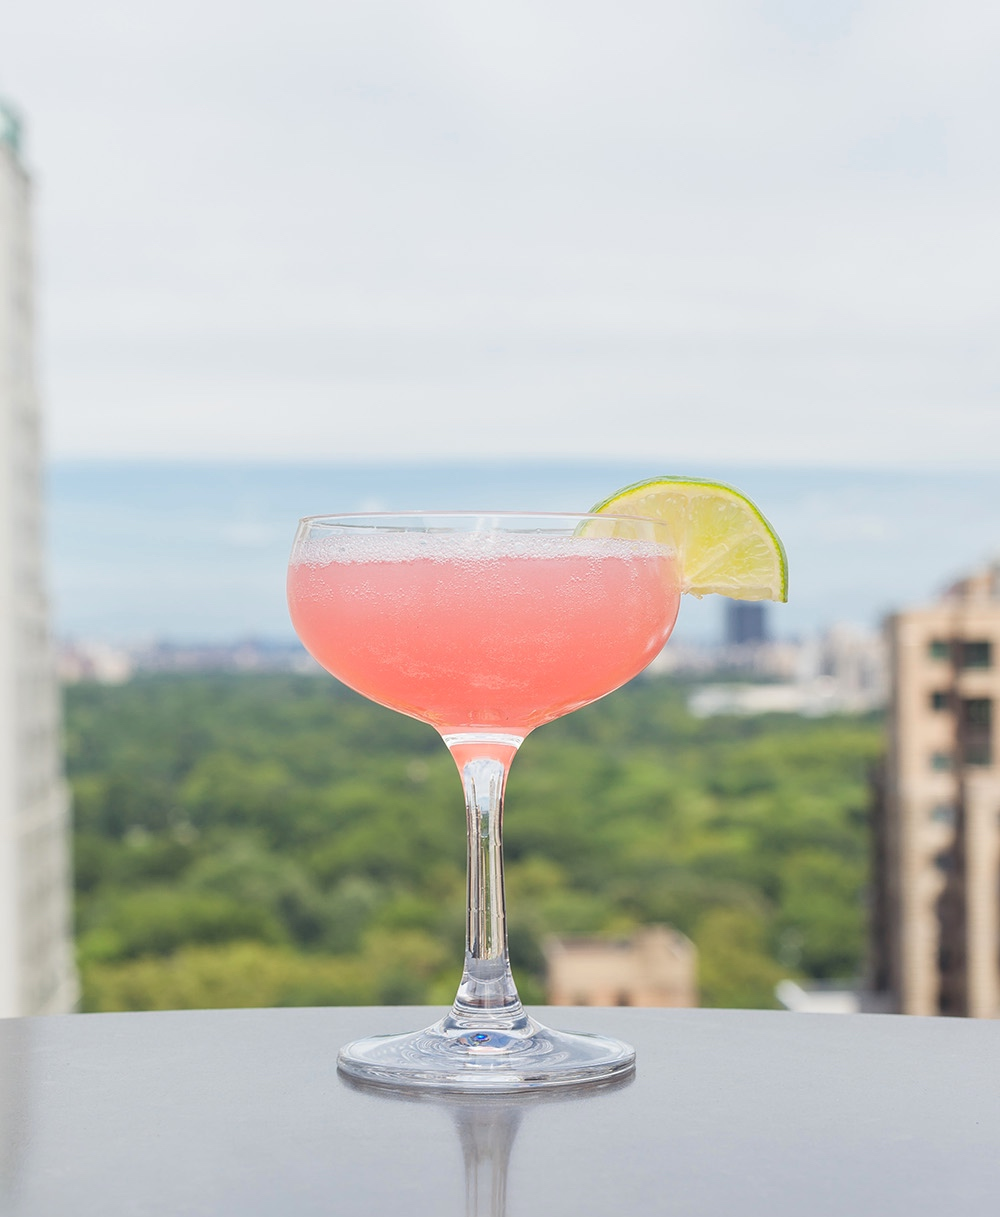 Best Cosmopolitan Recipe-How To Make A Cosmopolitan-Delish.com